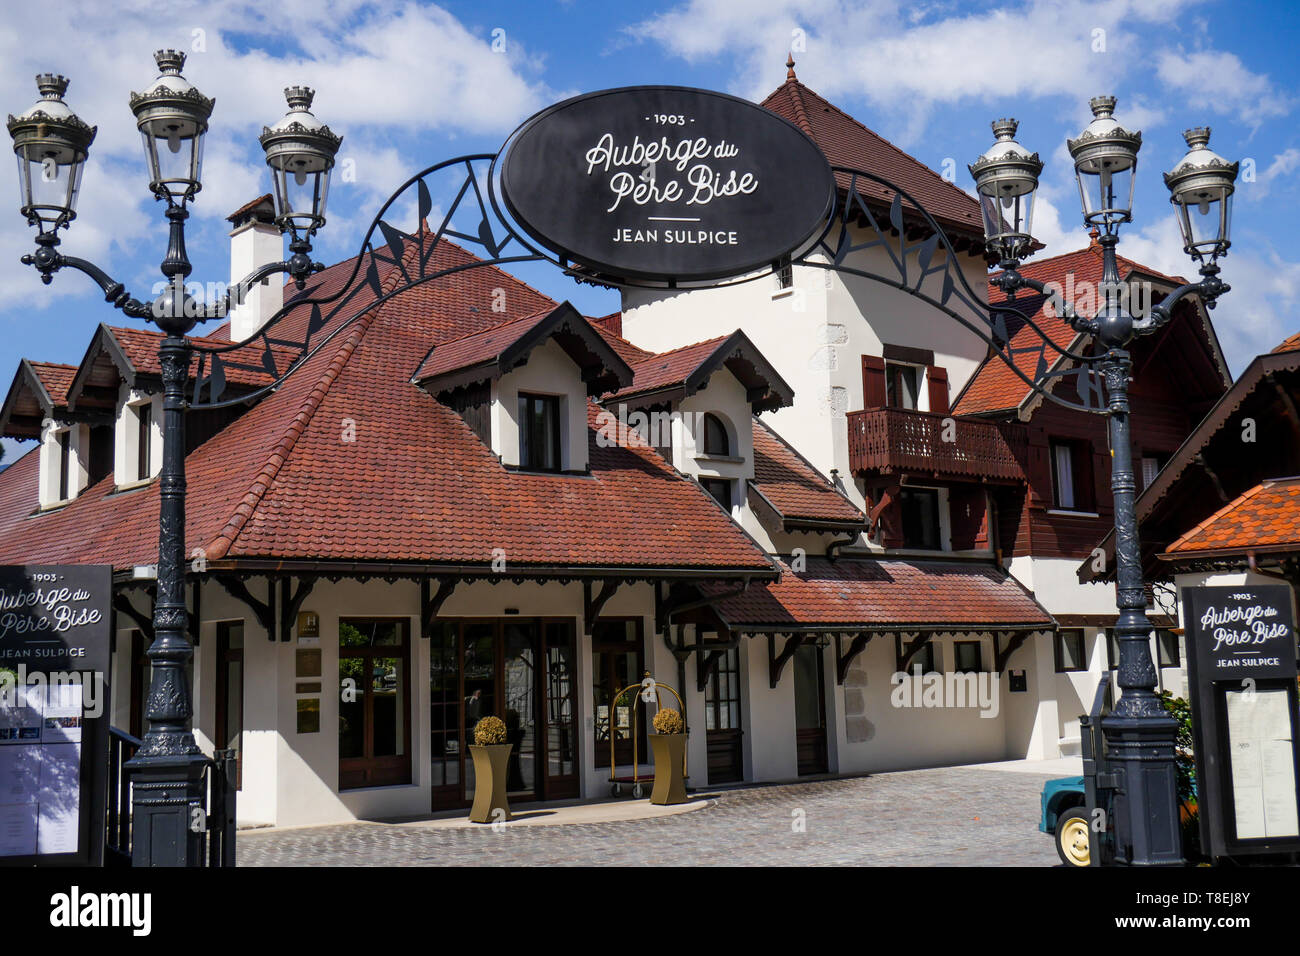 Auberge du Père Bise, Two Stars renowned restaurant in Talloire, Annecy Lake, Haute-Savoie, France - Stock Image